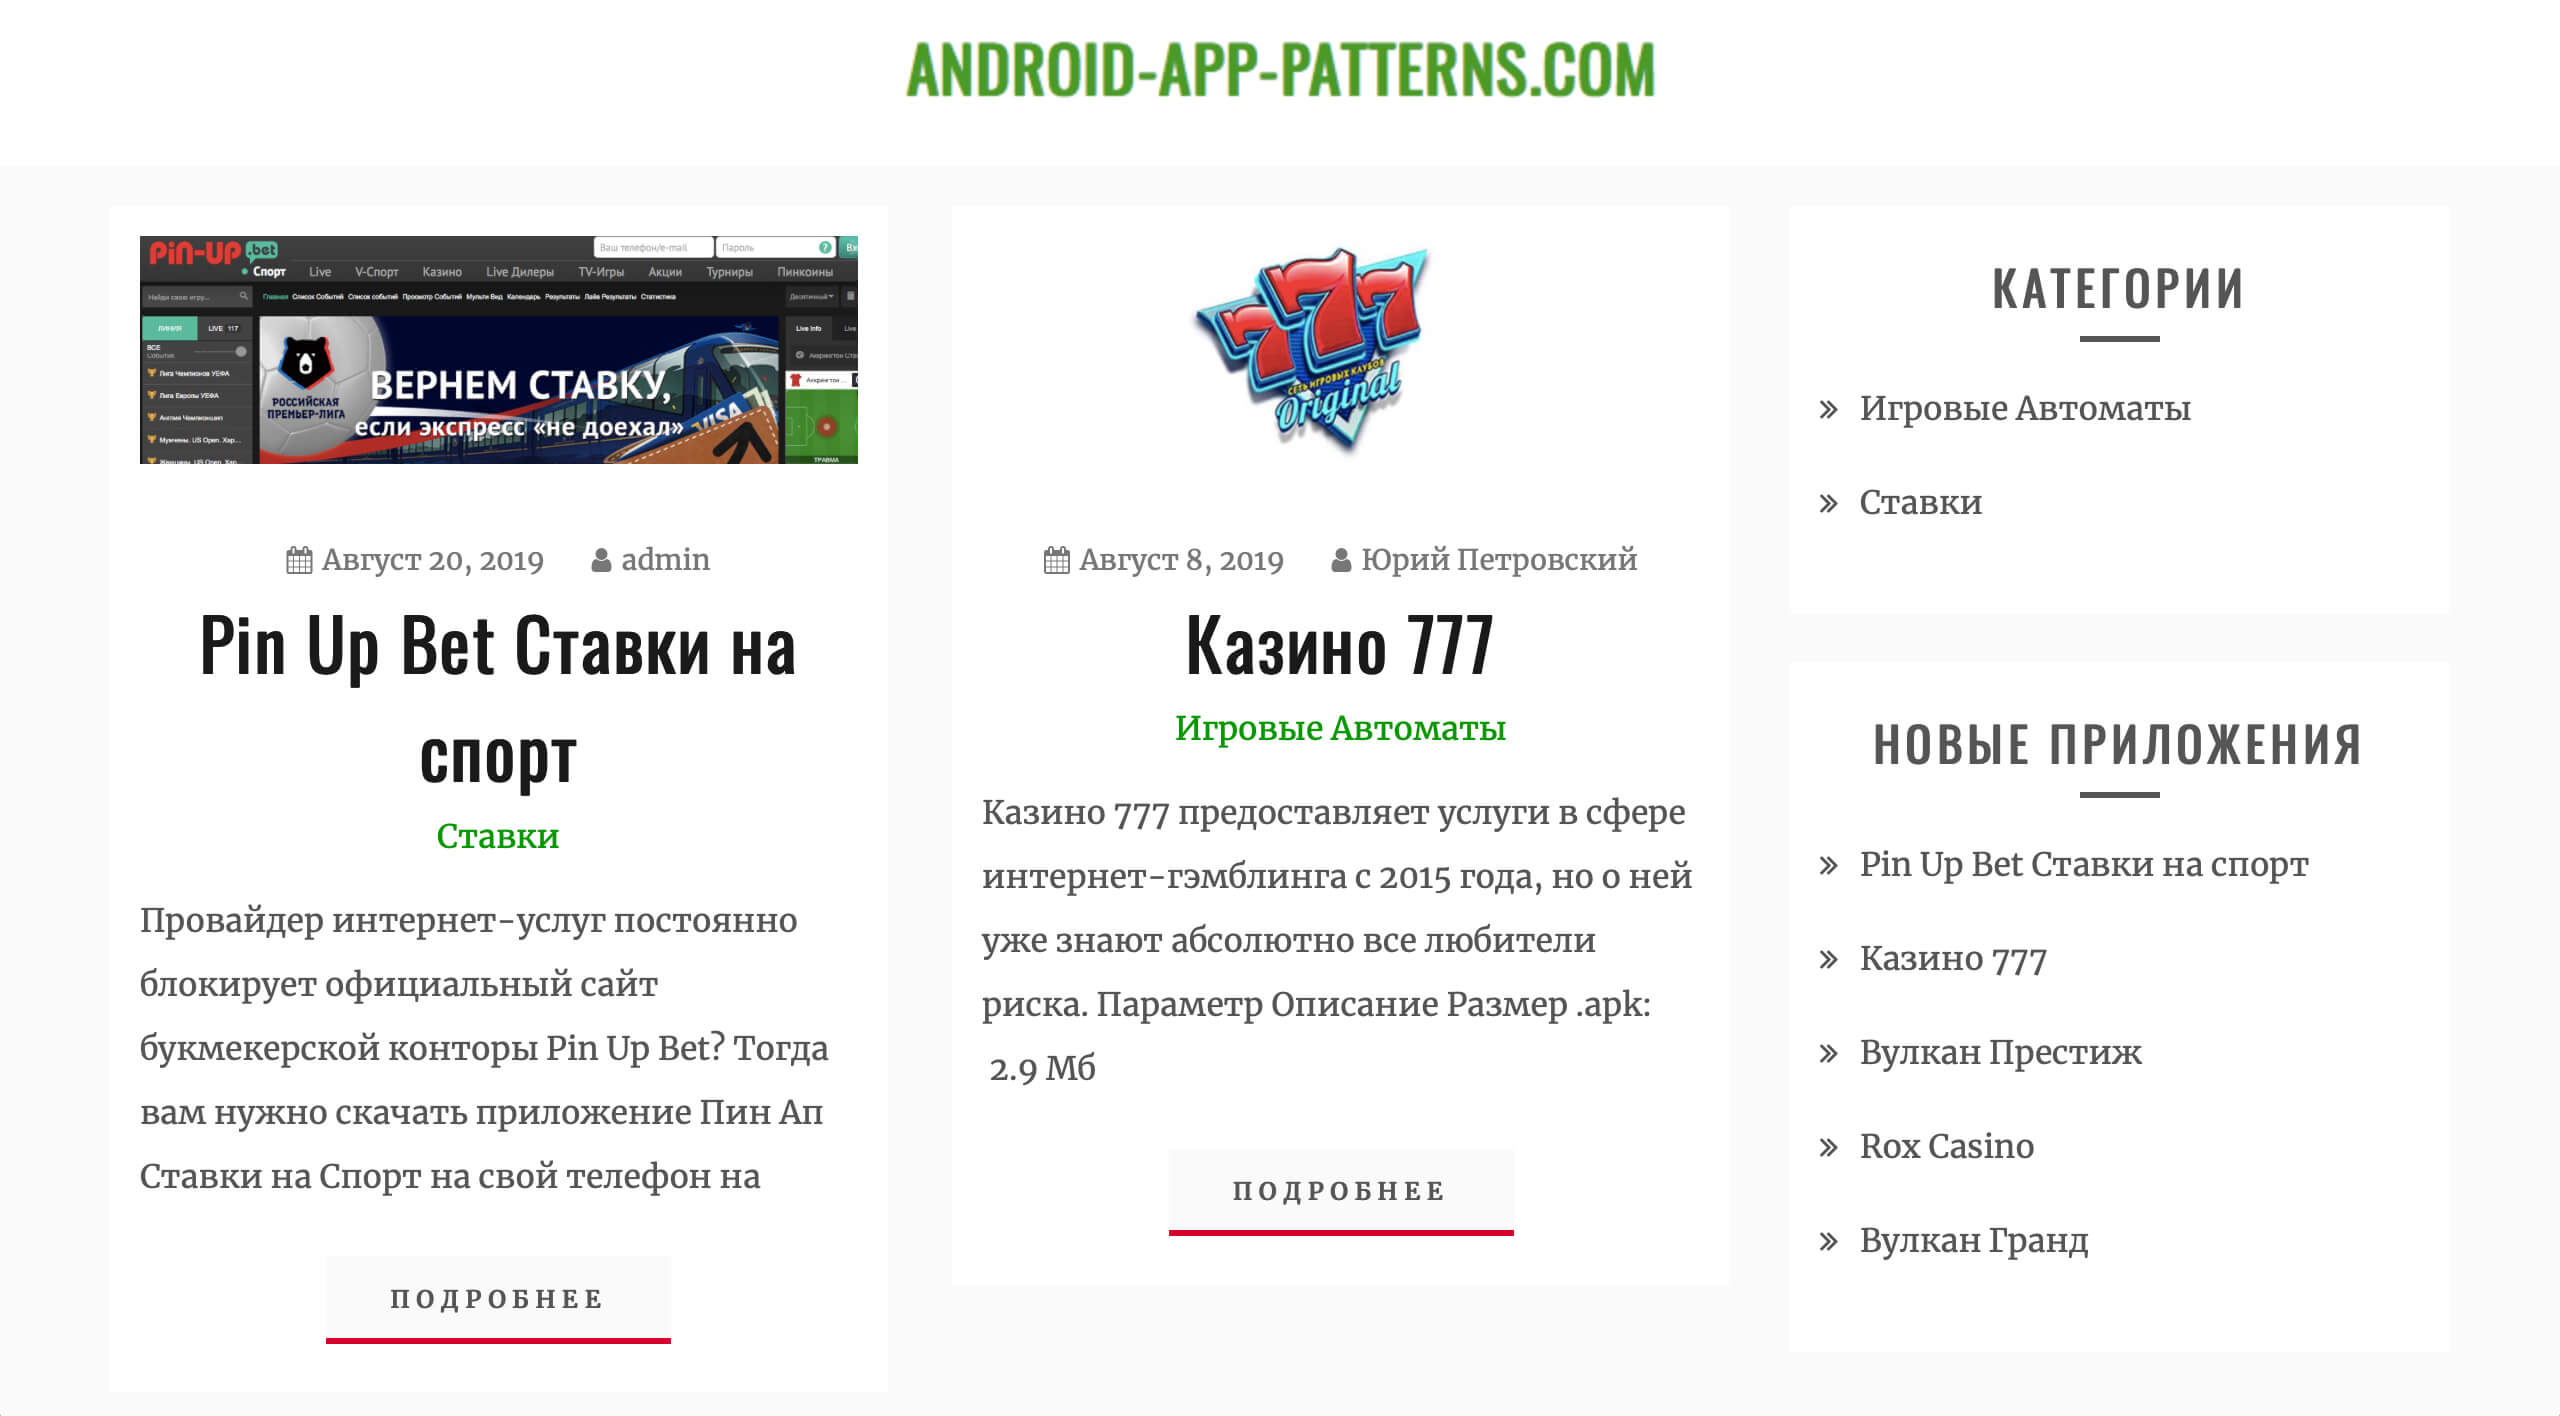 Android-App-Patterns.com